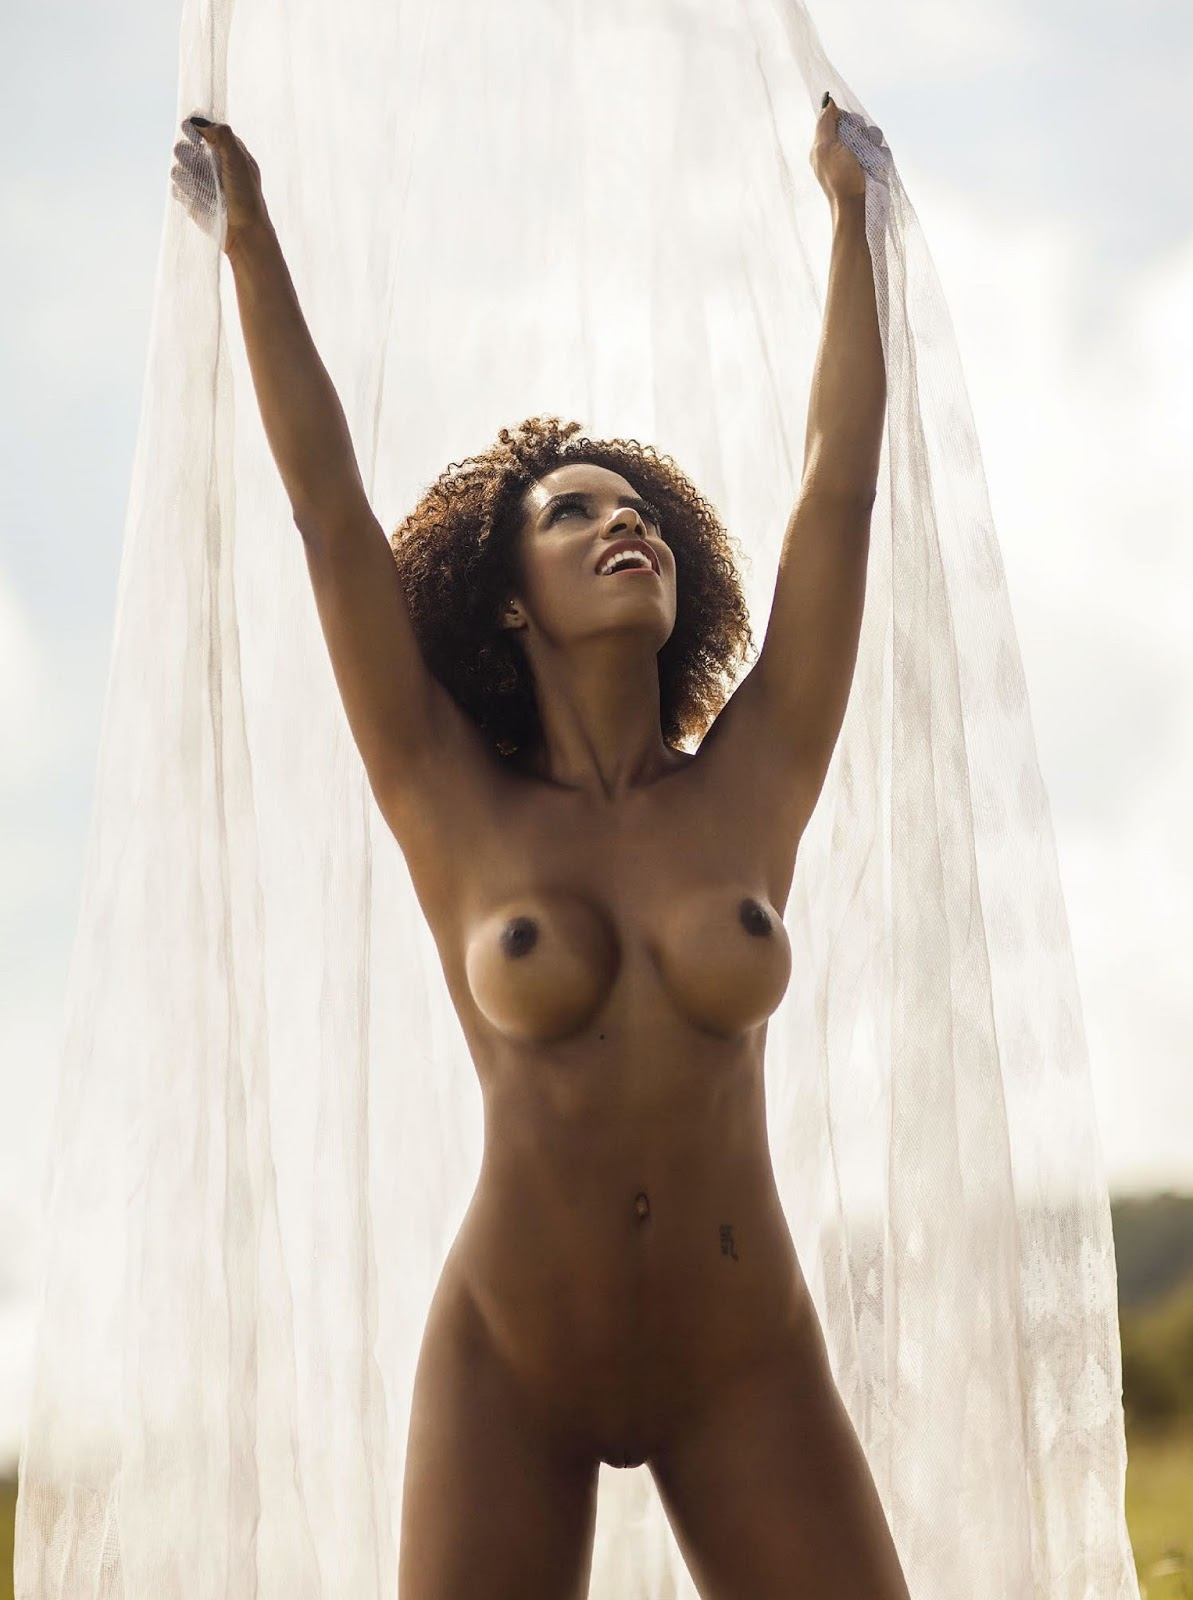 Topless Nude Playboy Covers Photos